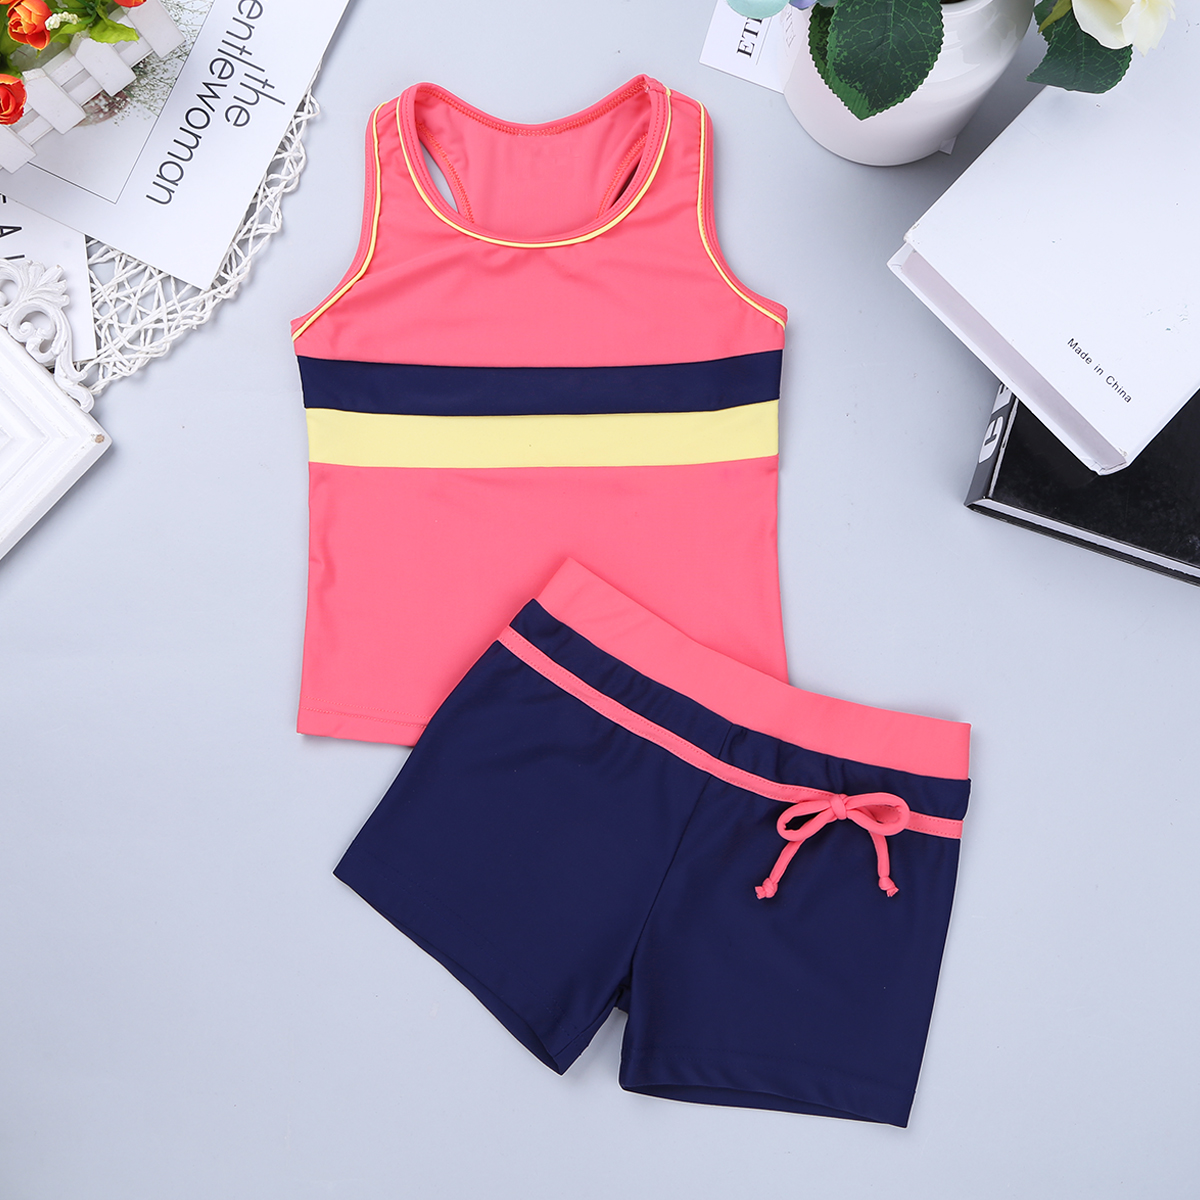 Children Swimwear Girl Two piece Swimsuit Girls Kids Bikini Bathing Suit Tankini Sport Vest Tops with Bottoms Shorts SZ 6 to 14(China)